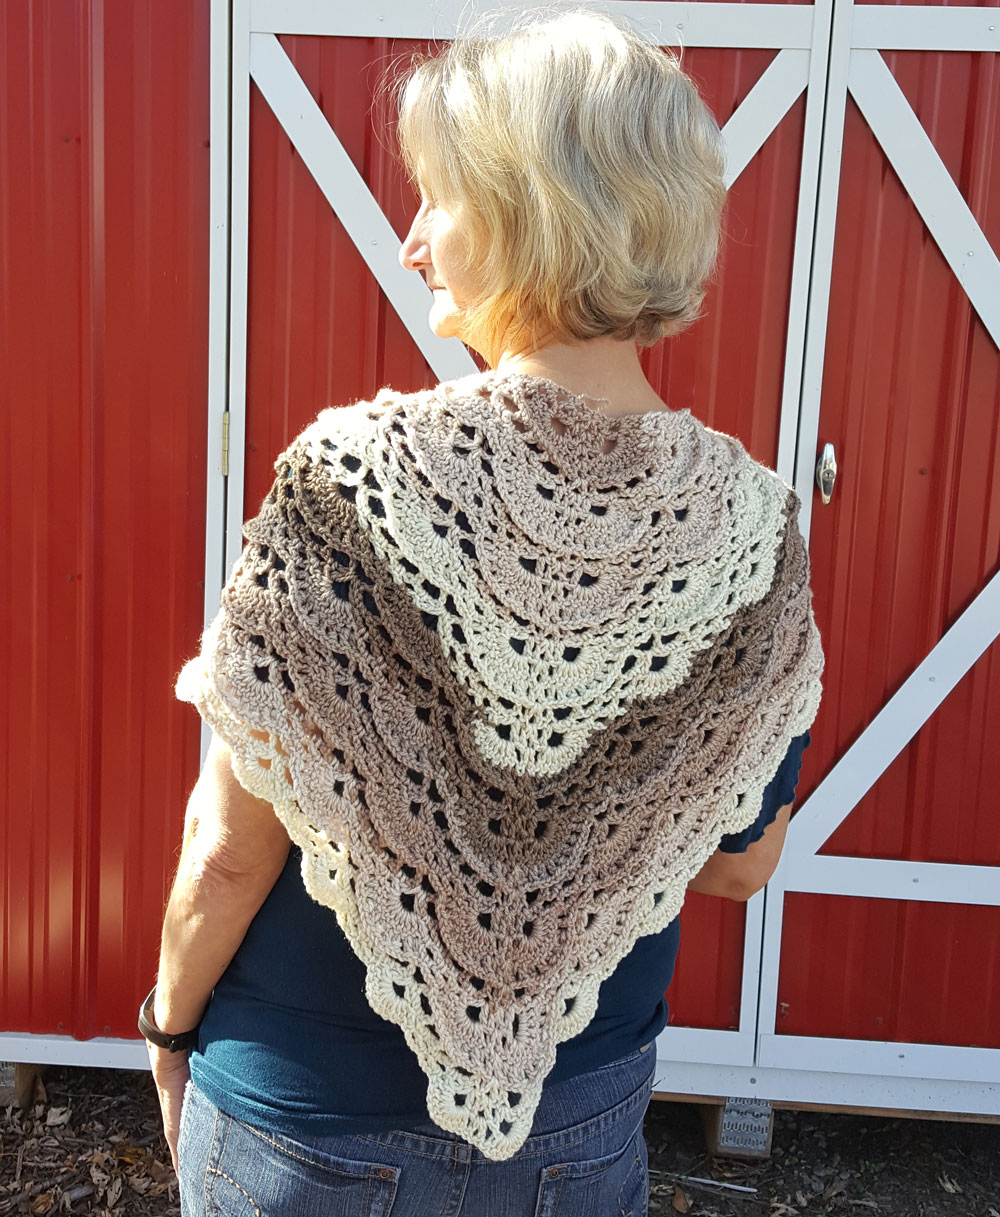 Fluffy Merinque Shawl by Laura Jean Bartholomew, Adapted with Existing Pattern on Yarnspirations.